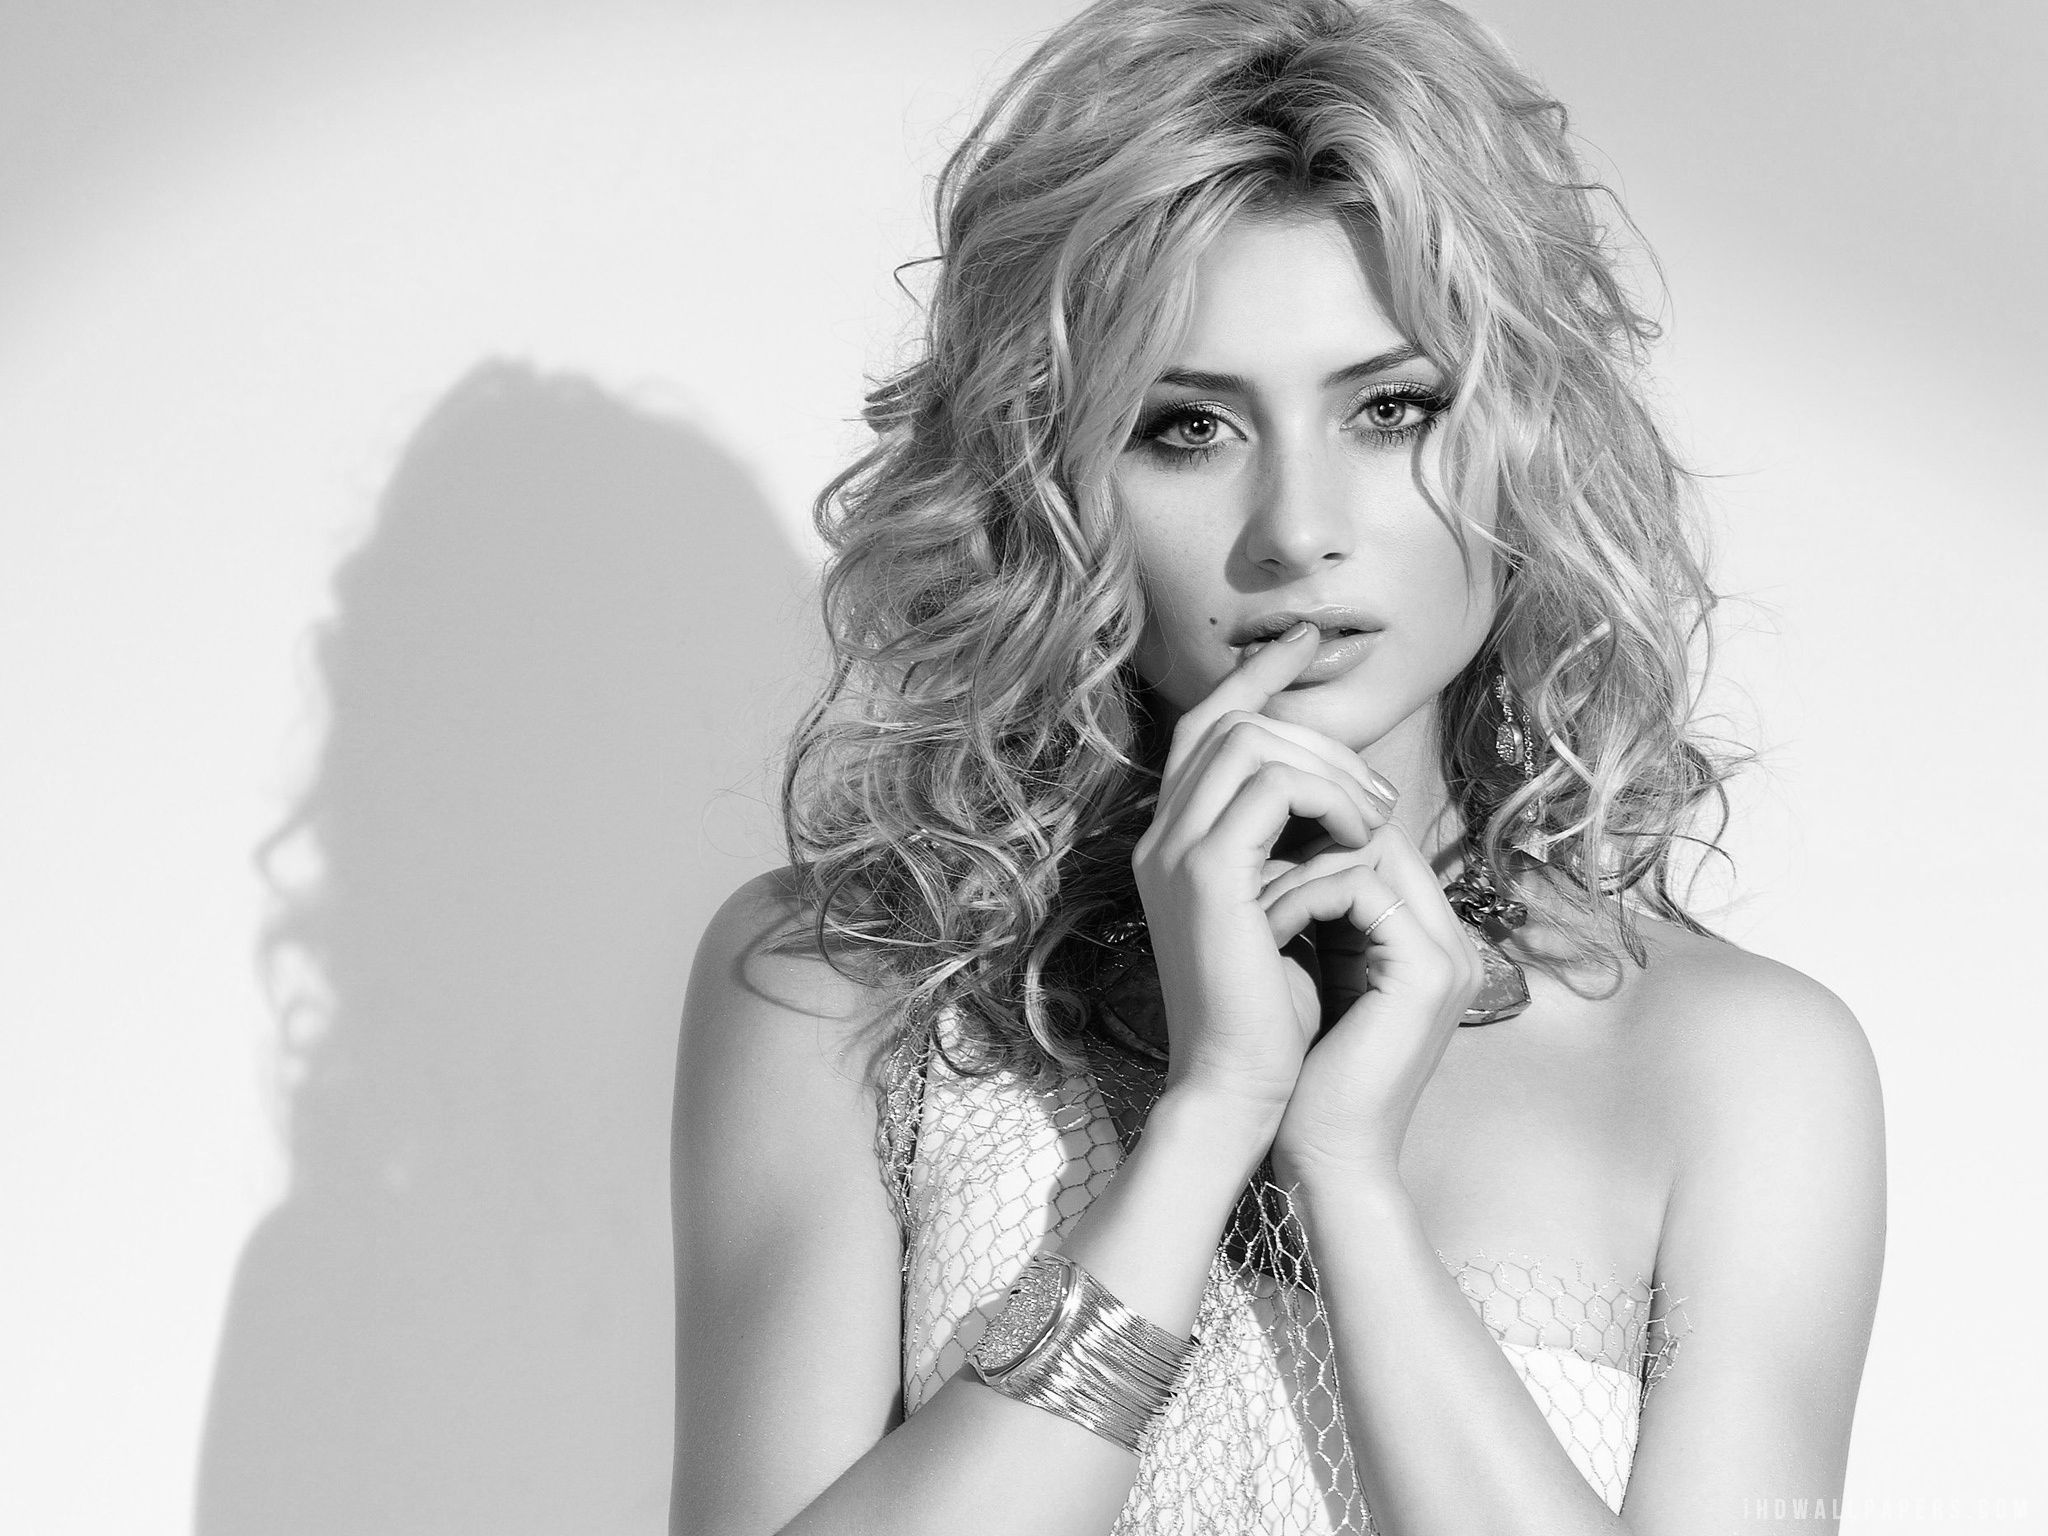 Aly michalka aly michalka black n white women black and white black